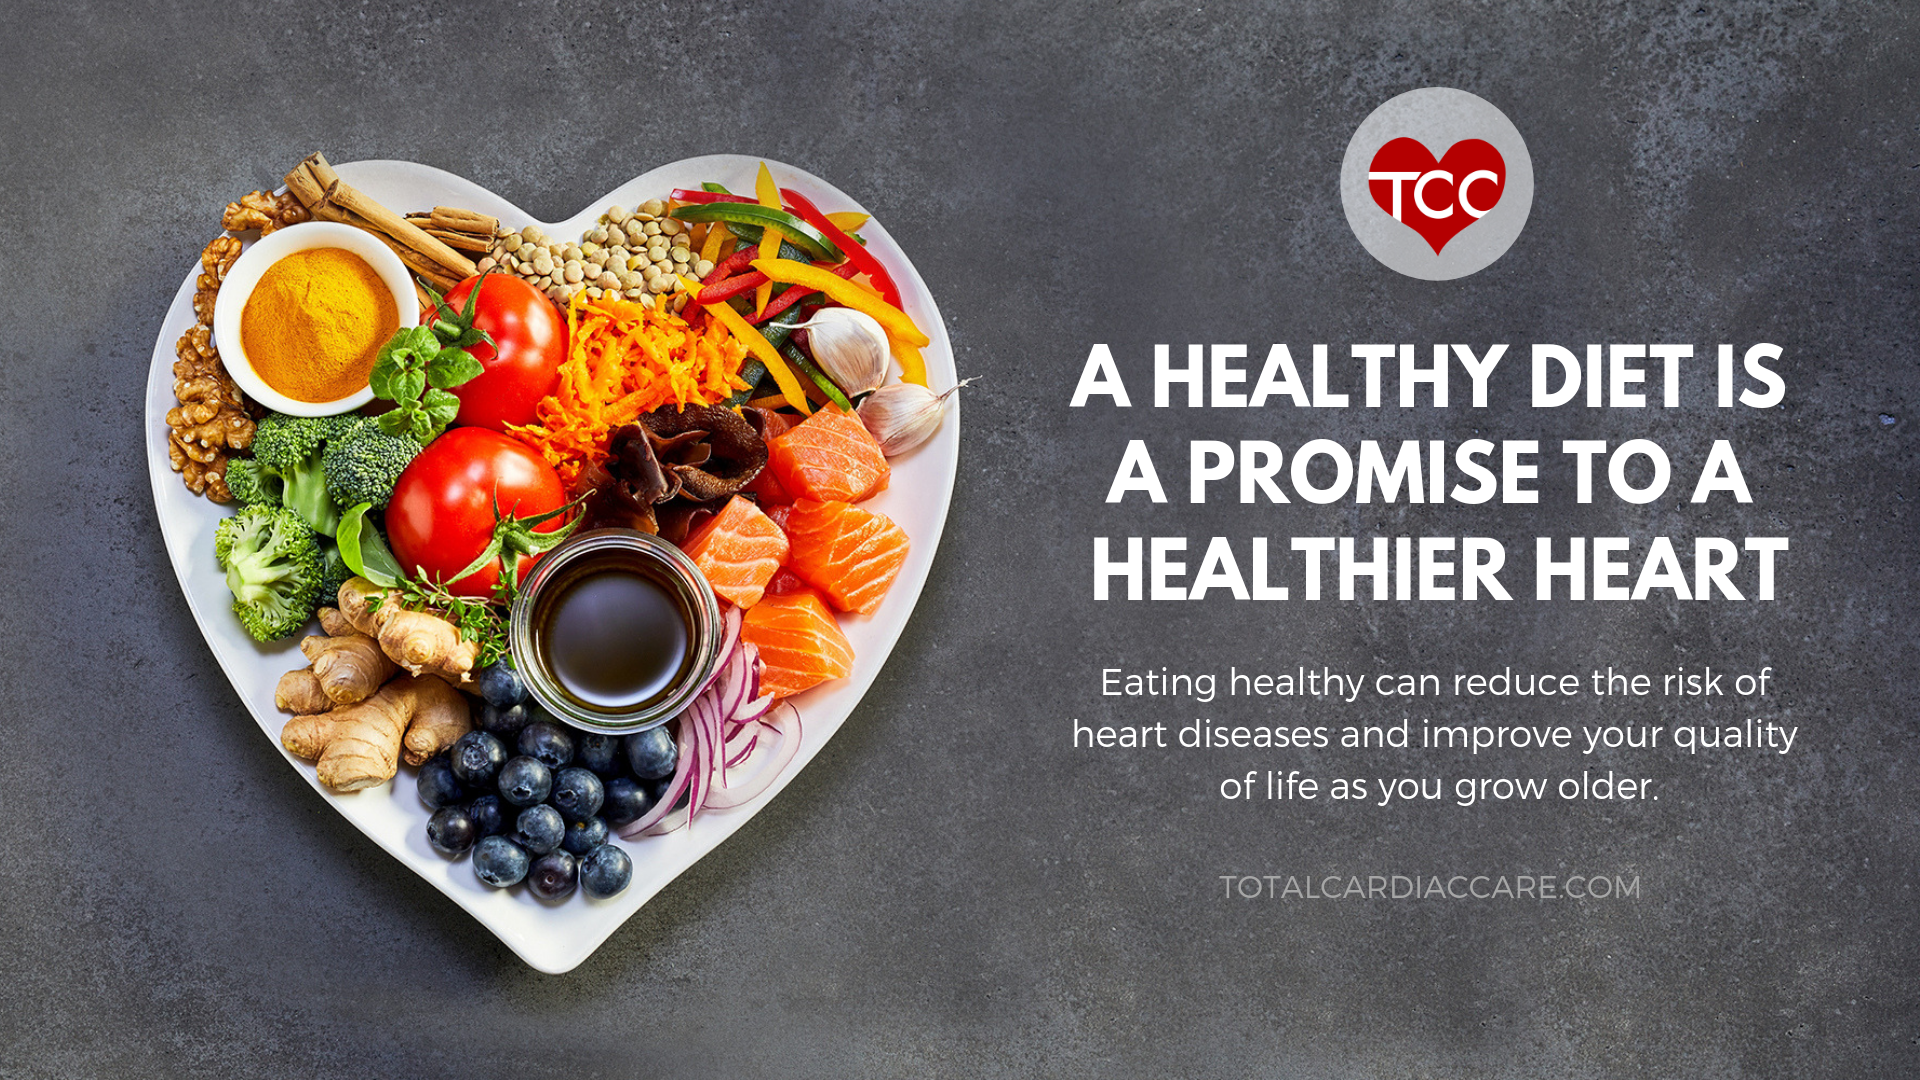 Healthy Food & Heart Health -Total Cardiac Care - Eating healthy can reduce the risk of heart diseases and improve your quality of life as you grow older - A healthy diet is a promise to a healthier heart - heart healthy food